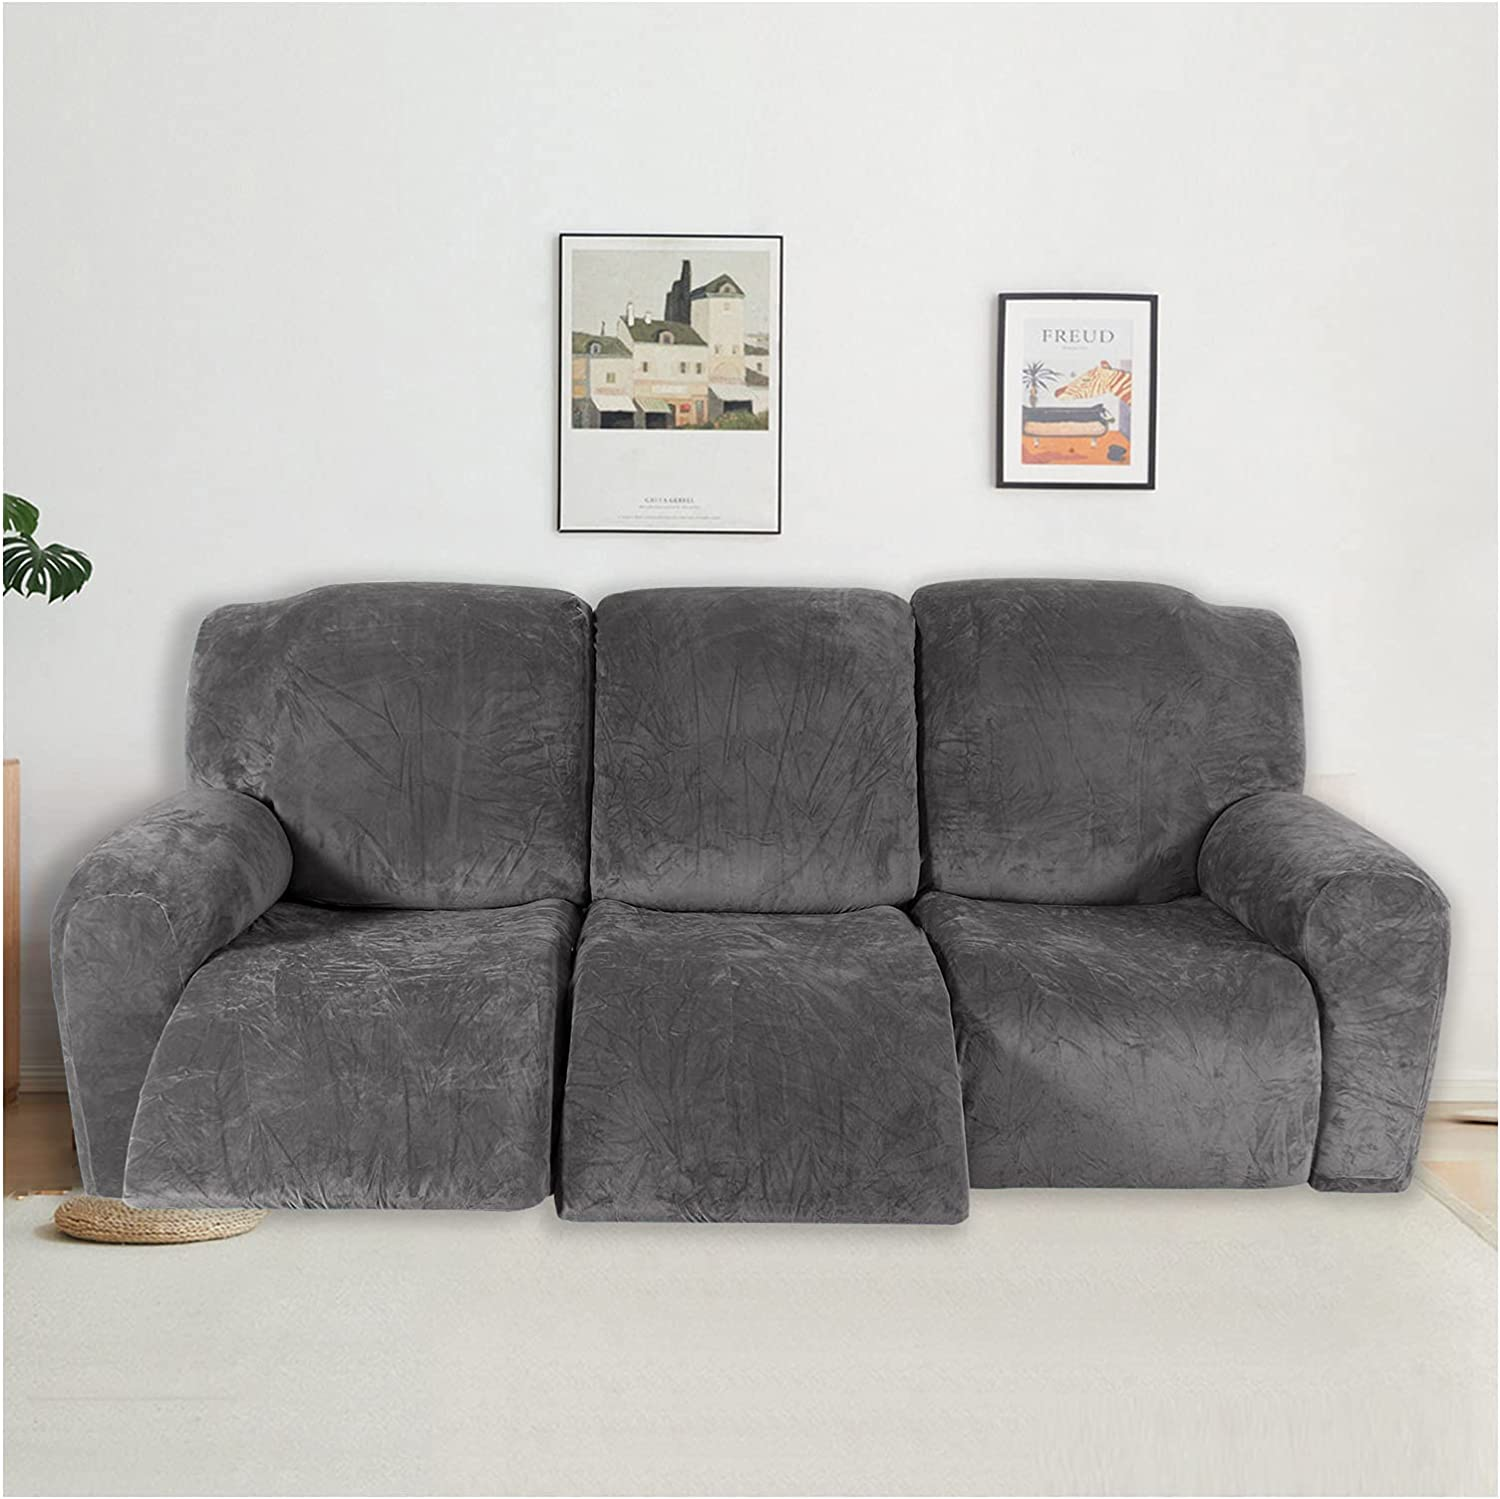 HUANXA NEW 8-Piece Velvet Recliner 3 Cover Stretch Seater OFFicial mail order